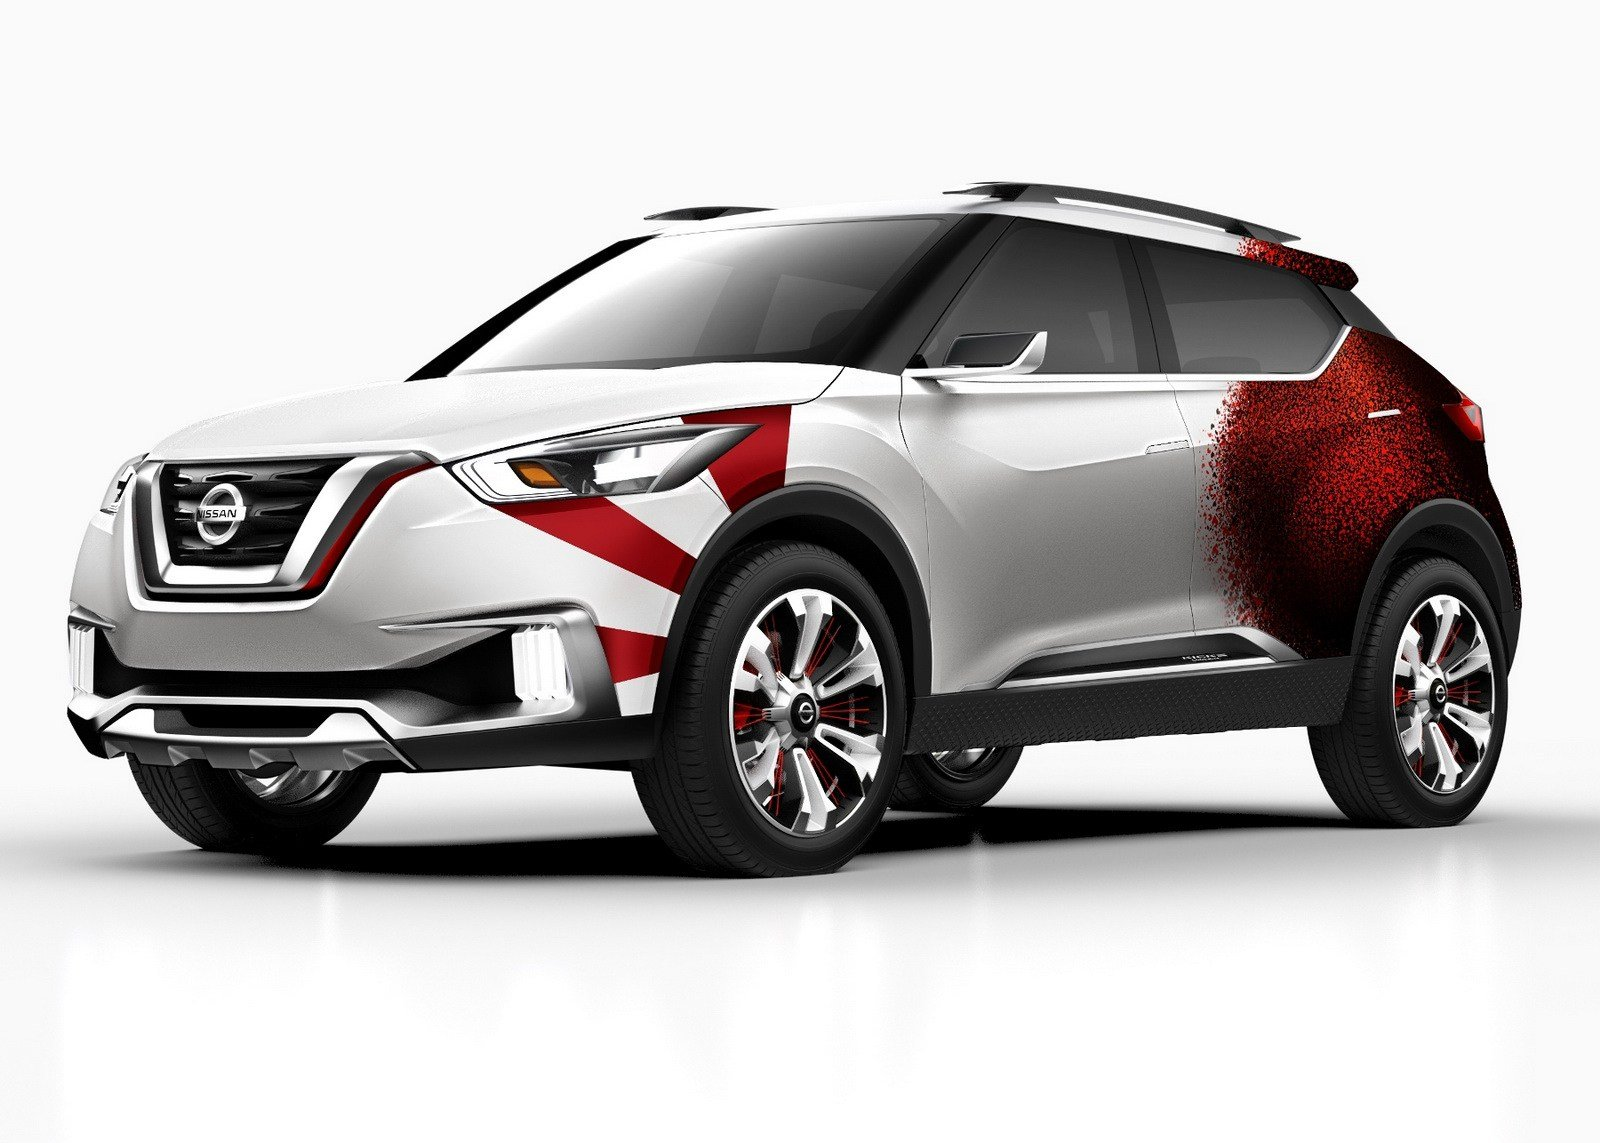 Latest Nissan Kicks Suv Concept Photo Gallery Car Gallery Suv Free Download